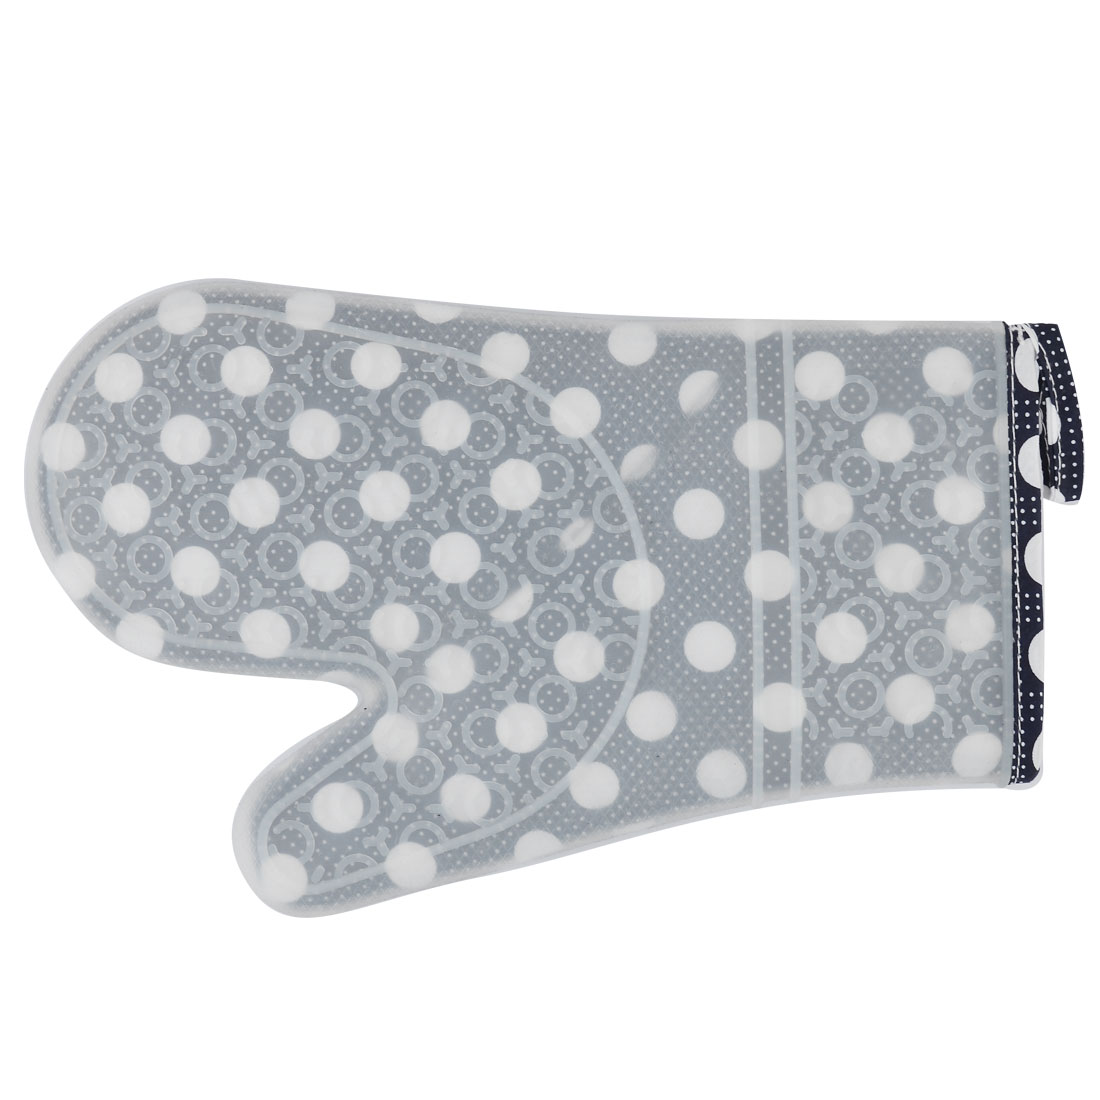 Kitchen Utensils Silicone Dot Pattern Heat Resistant Oven Mitt Glove White Black